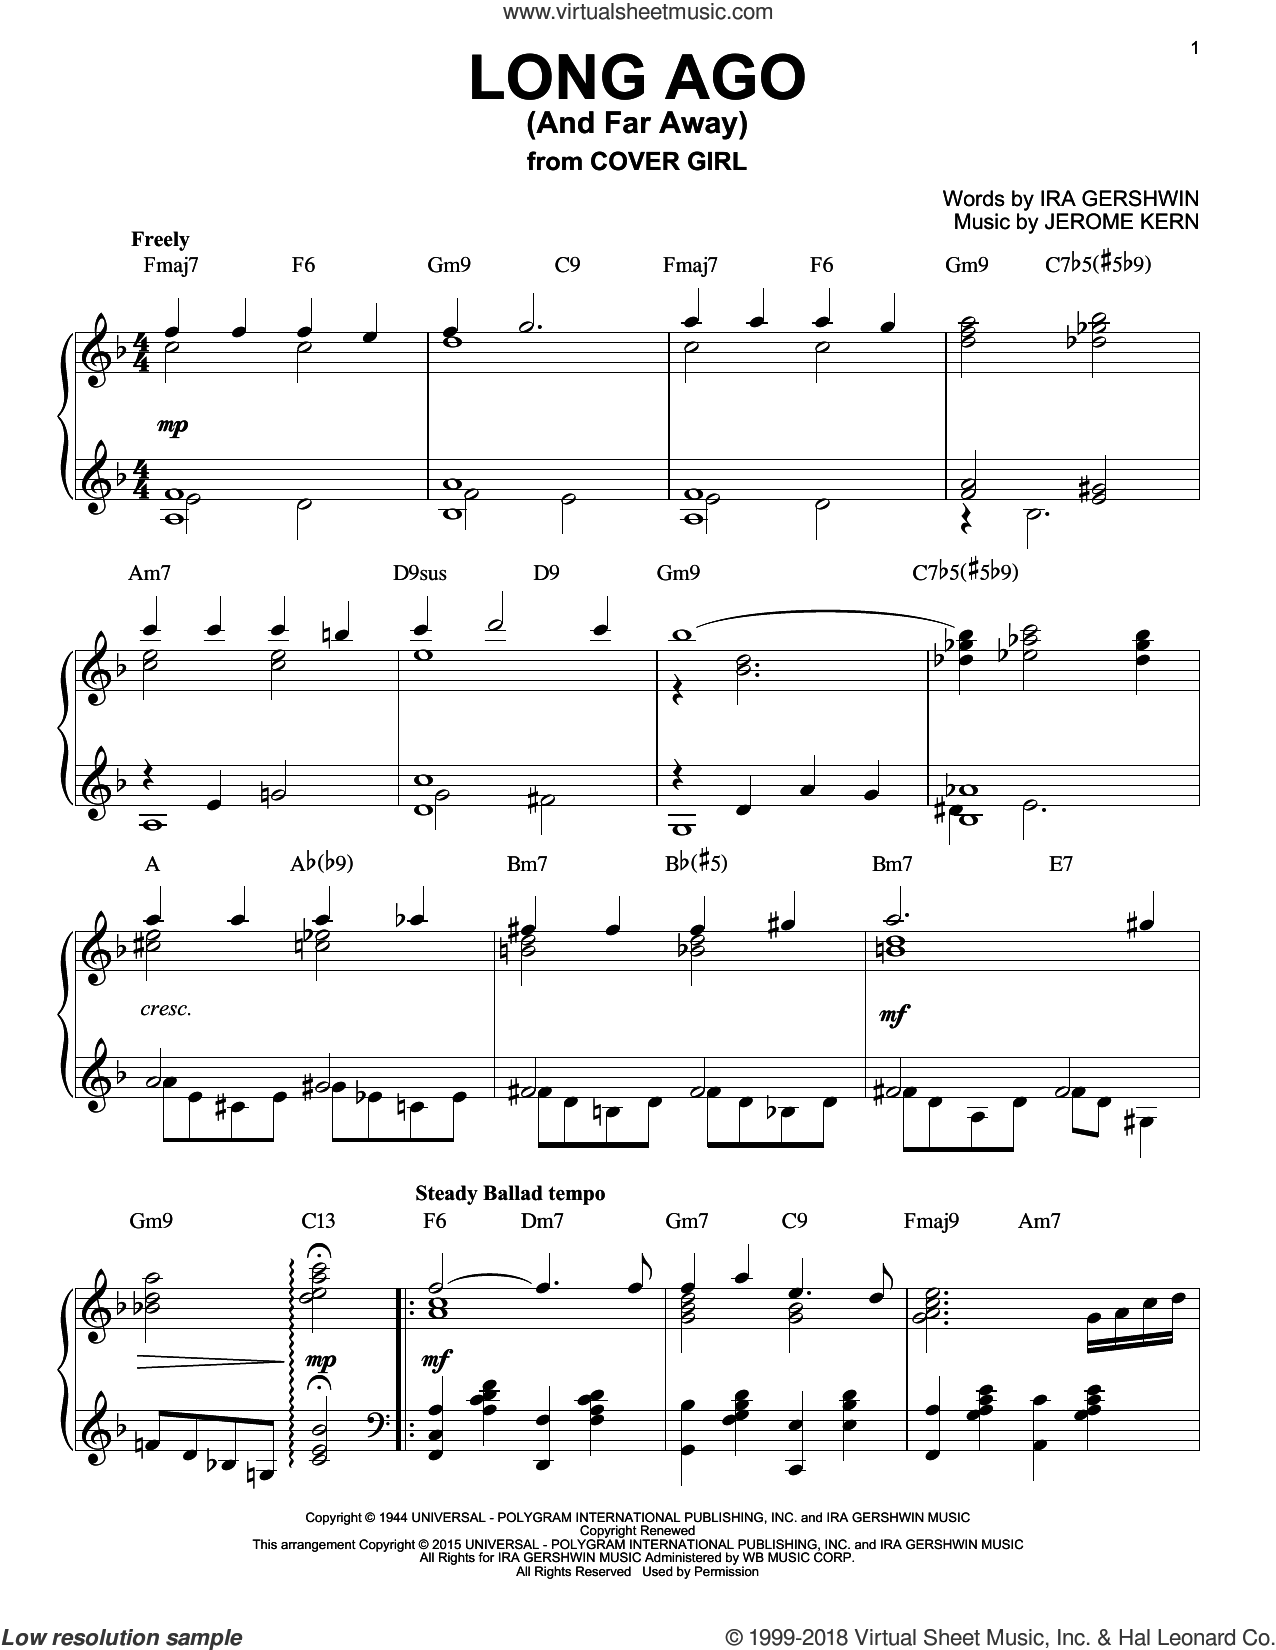 Long Ago (And Far Away), (intermediate) sheet music for piano solo by Jerome Kern and Ira Gershwin, intermediate skill level